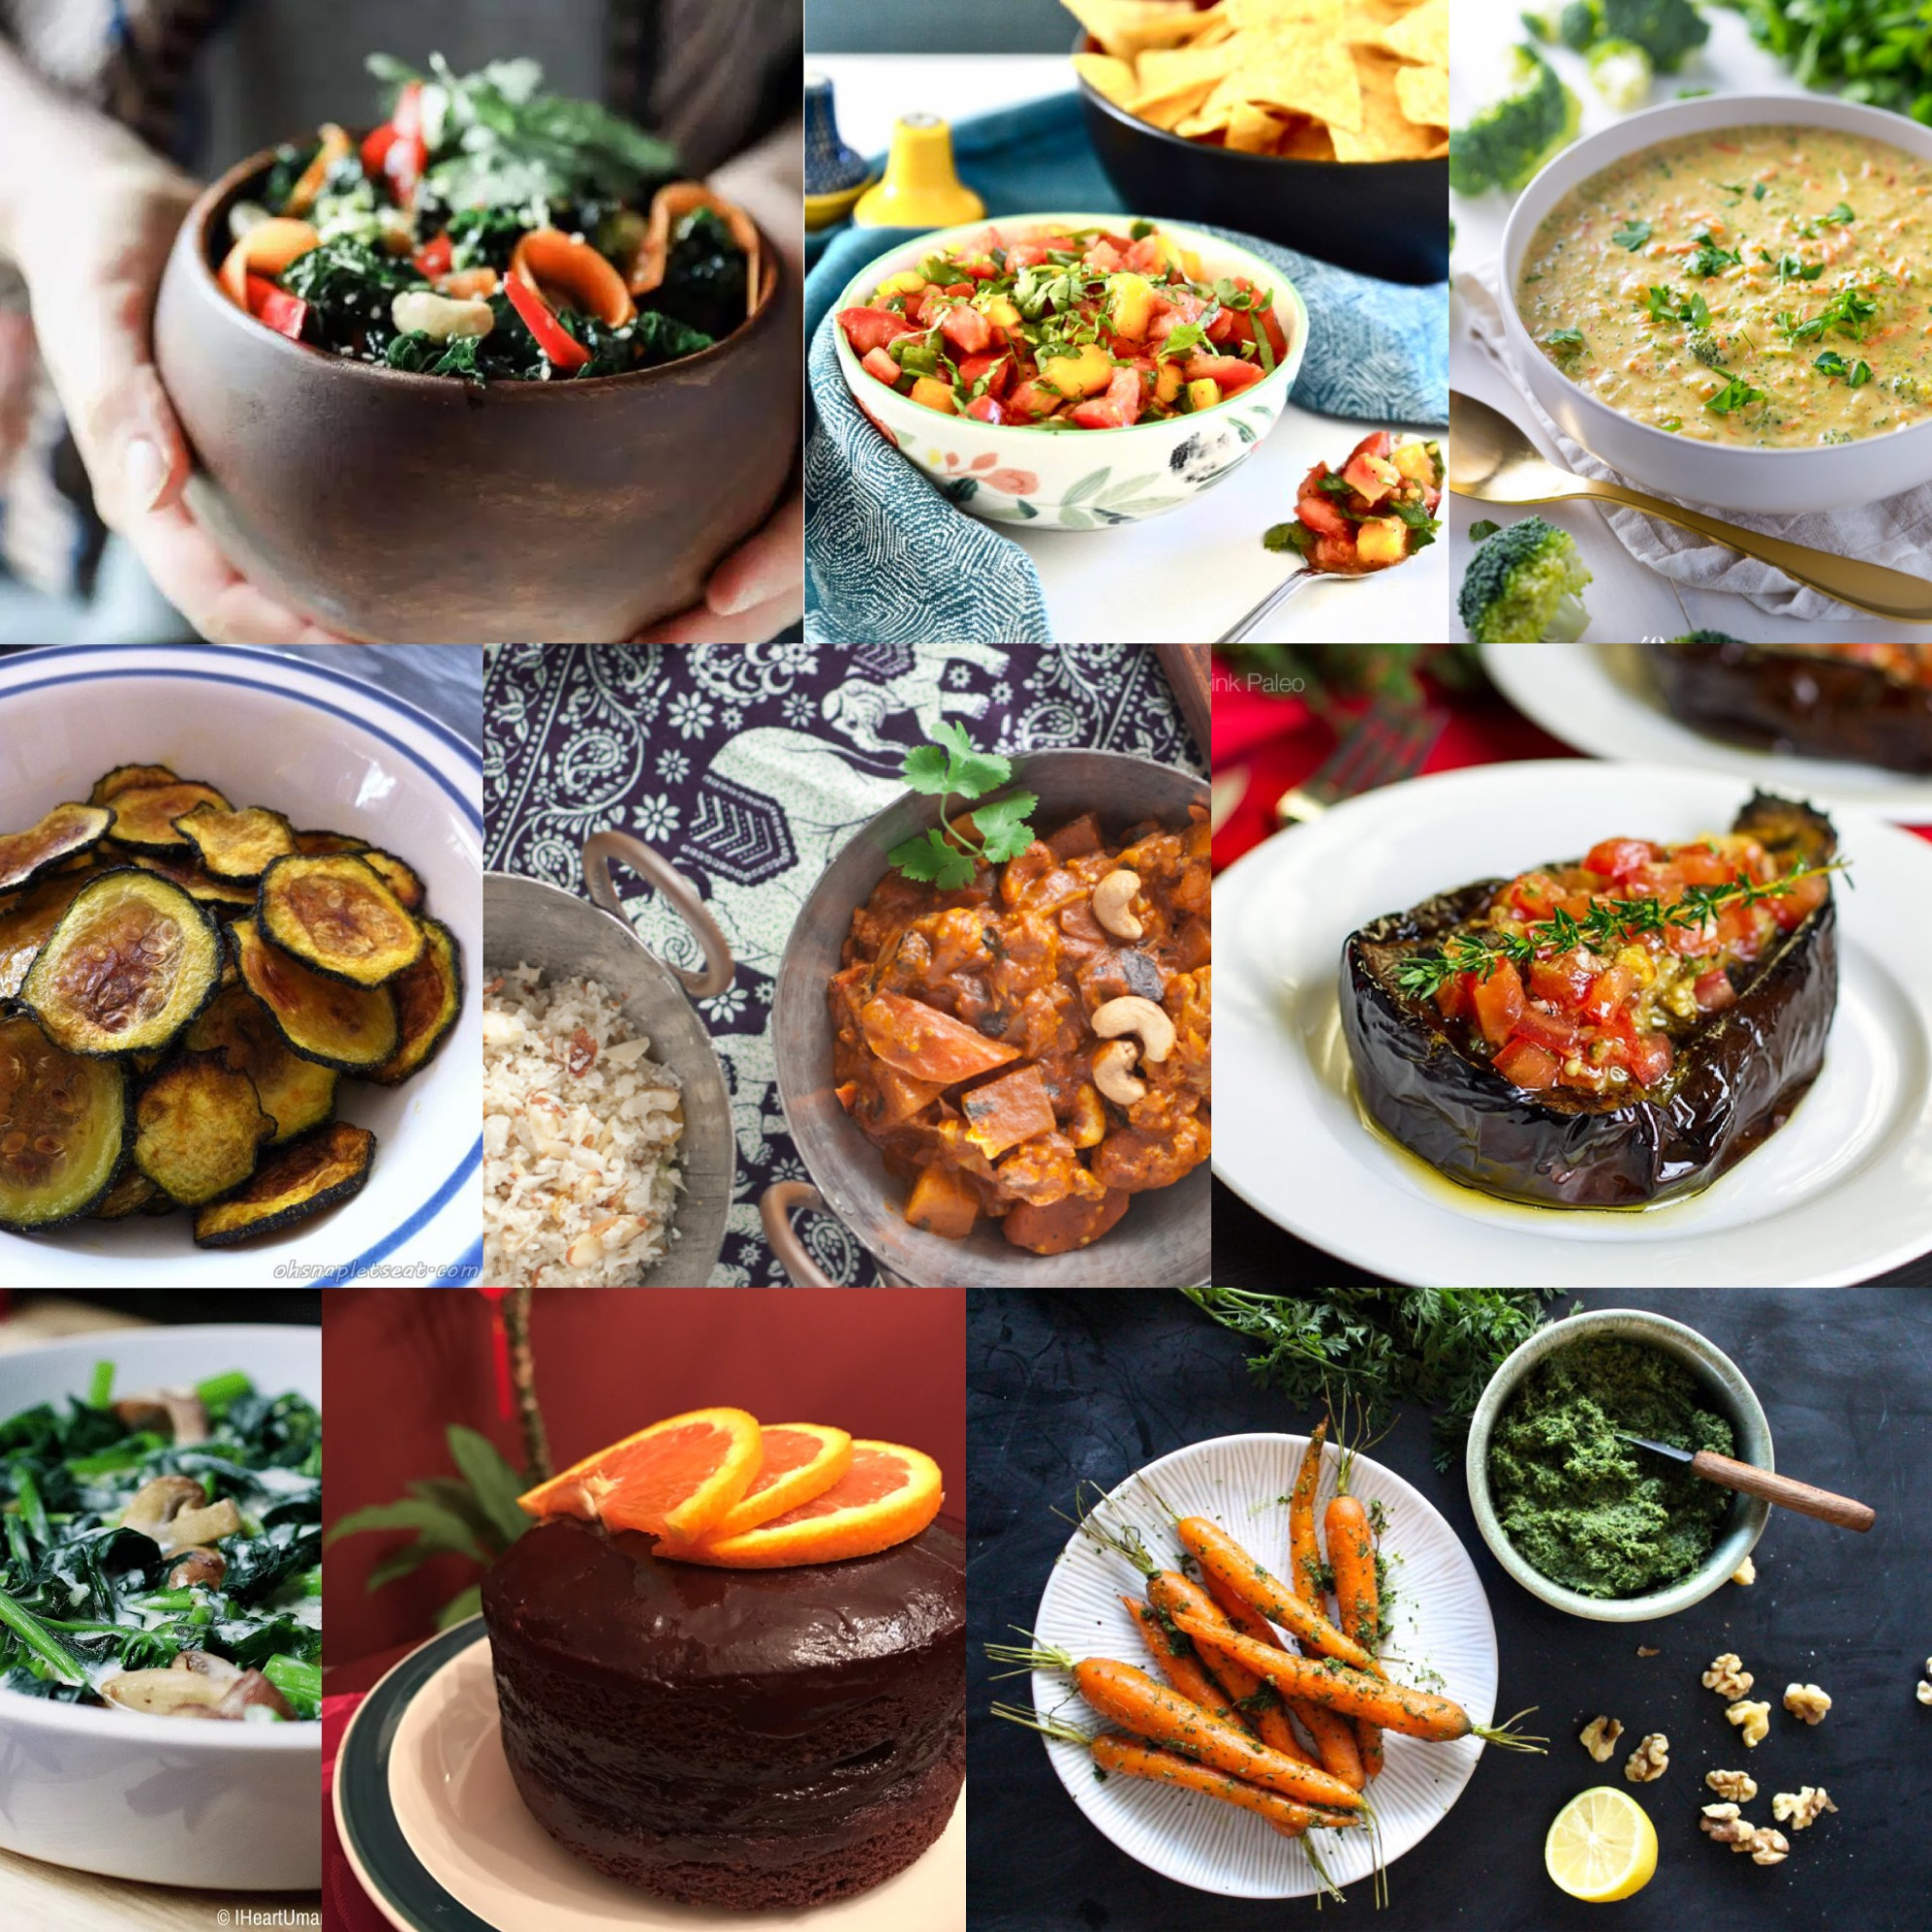 The Ultimate Paleo Vegetarian Recipes Roundup! - Oh Snap ..